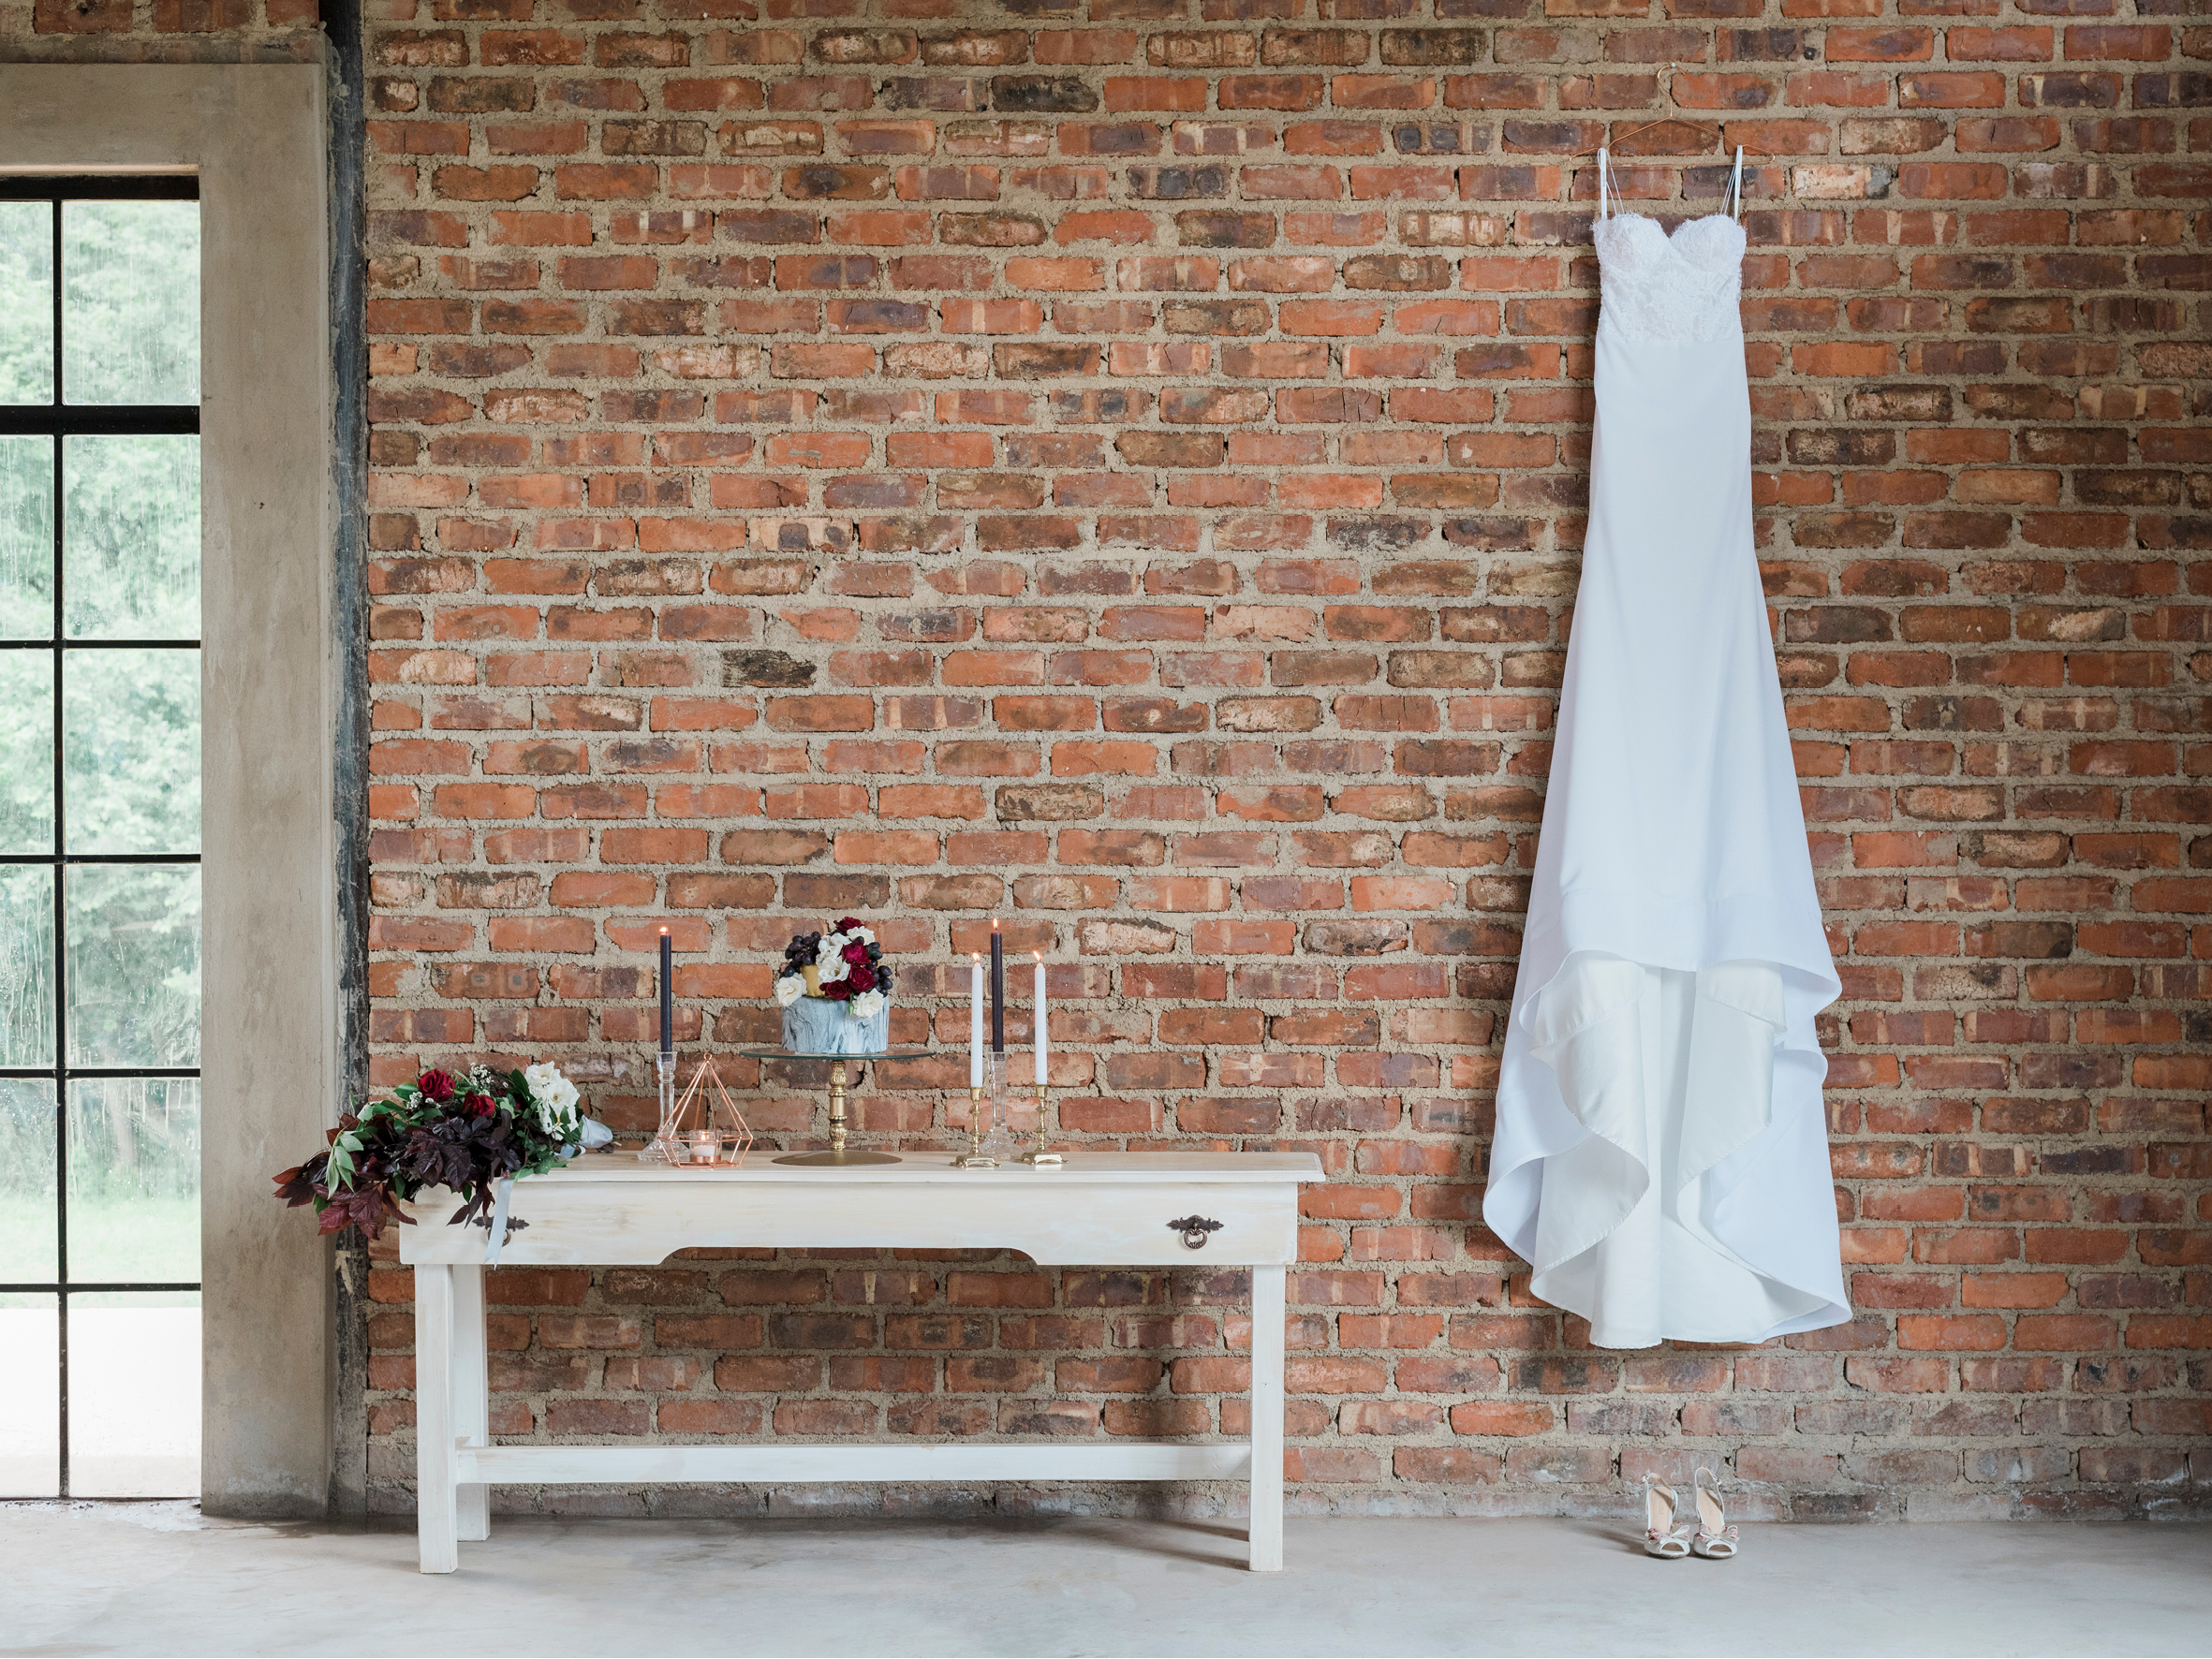 BronwynAlyson_Wedding_Styled shoot Industrial Modernism_02.jpg